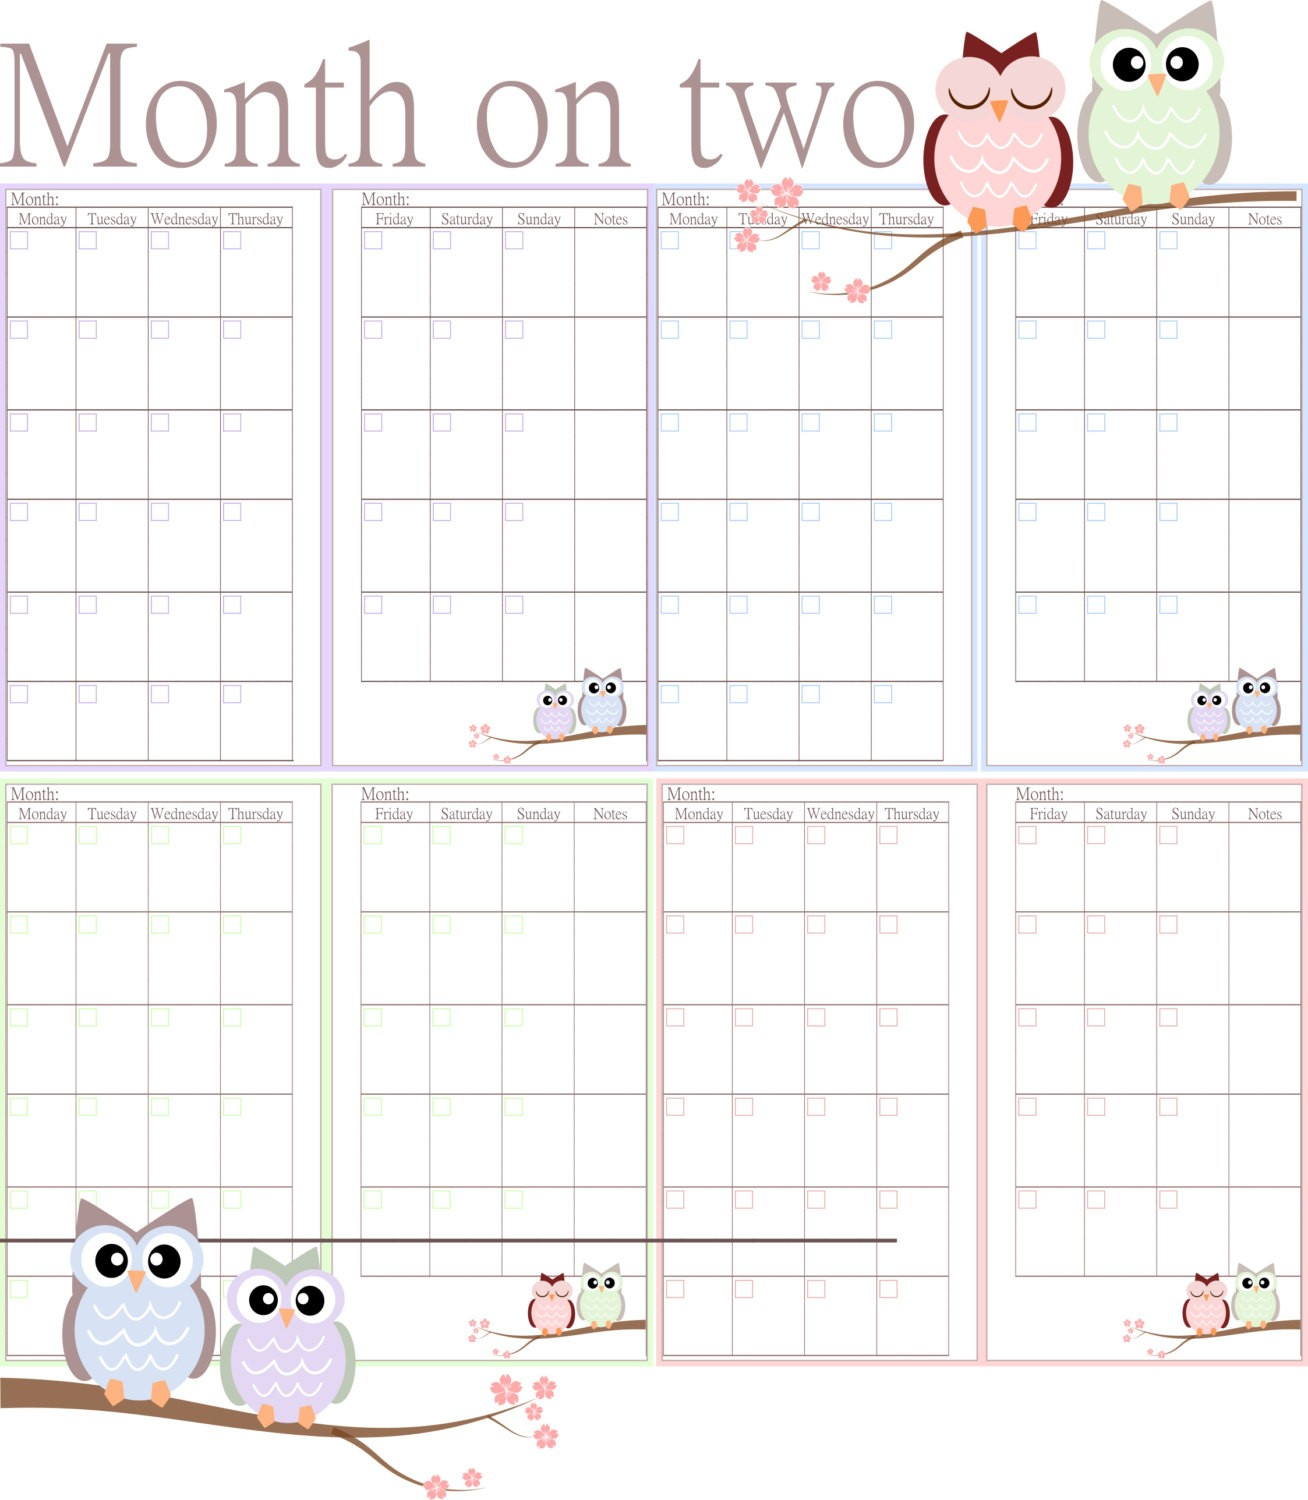 6 best images of filofax printable month on two for Two page monthly calendar template